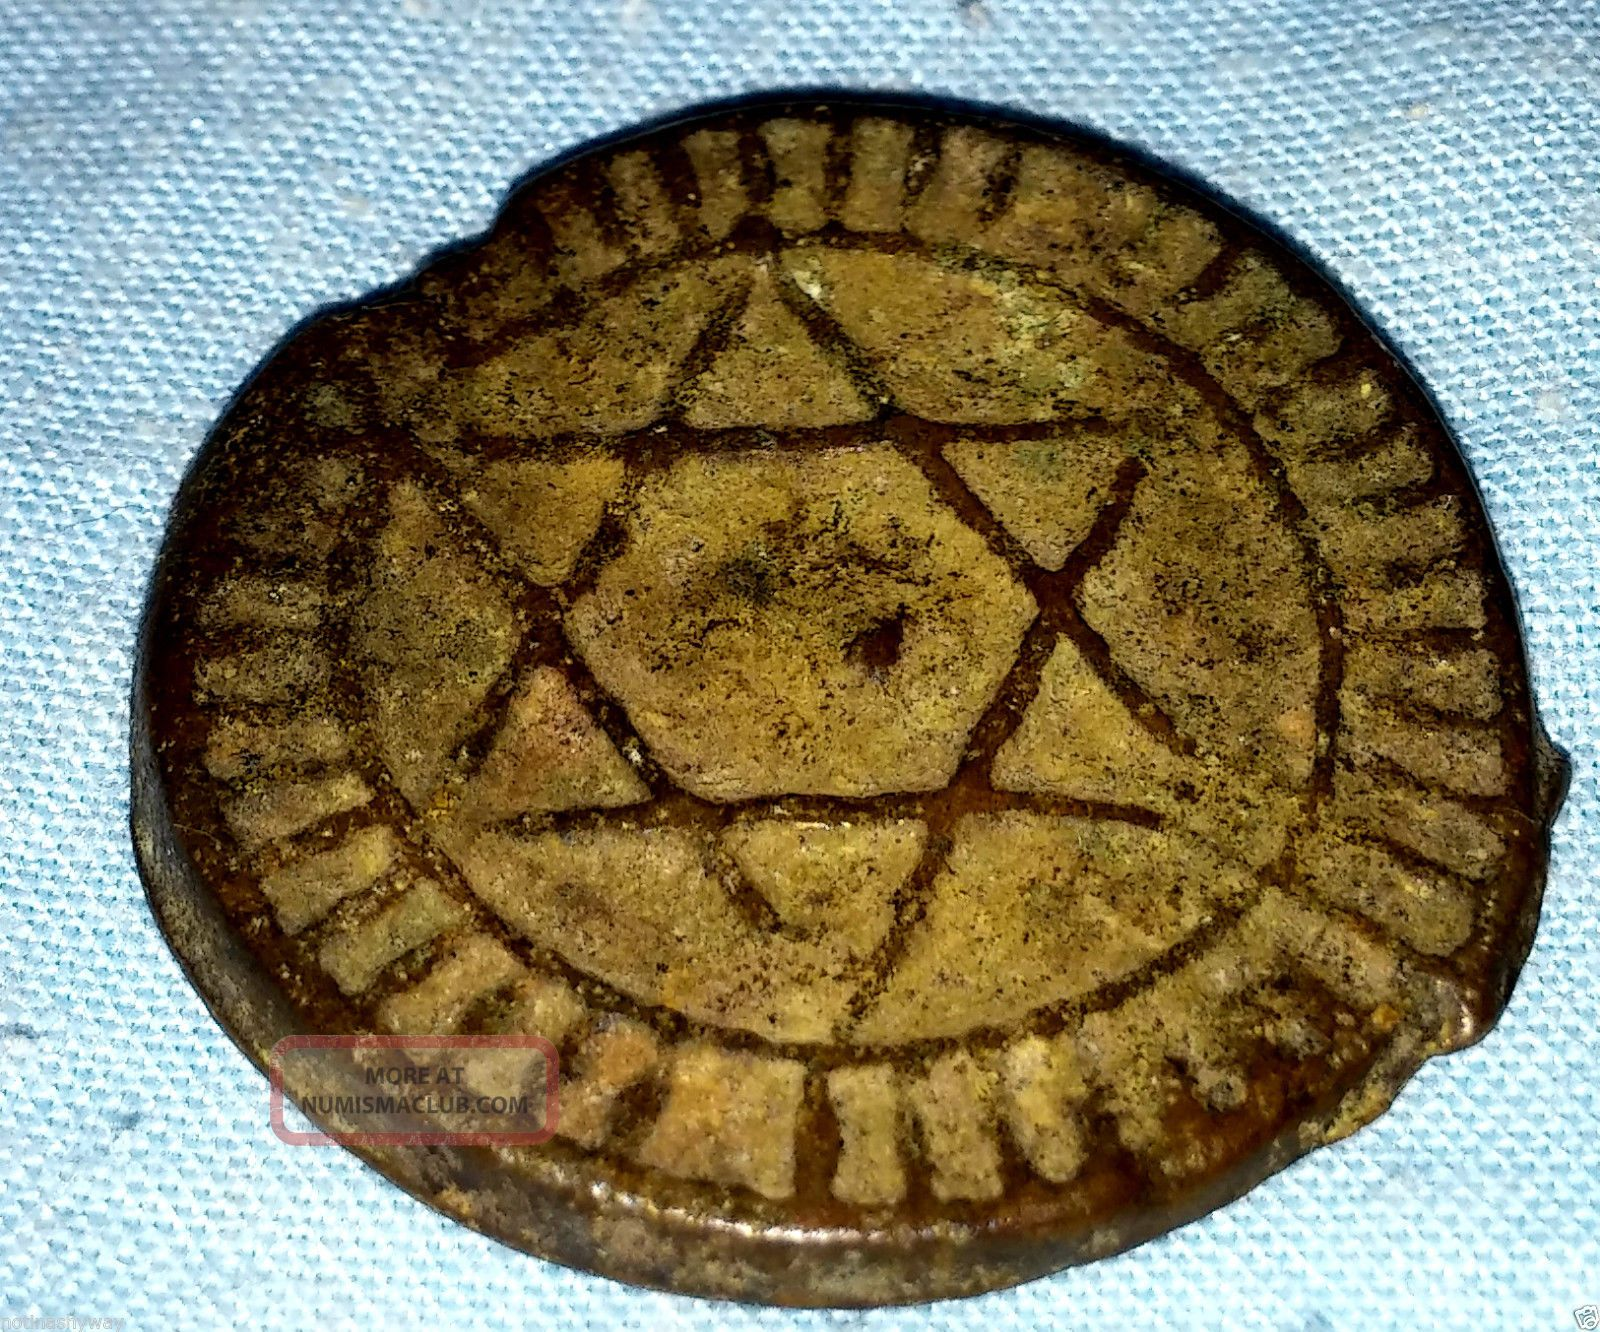 ... Jewish Isreal Greek Roman Antique Old Ancient Coins: Medieval photo